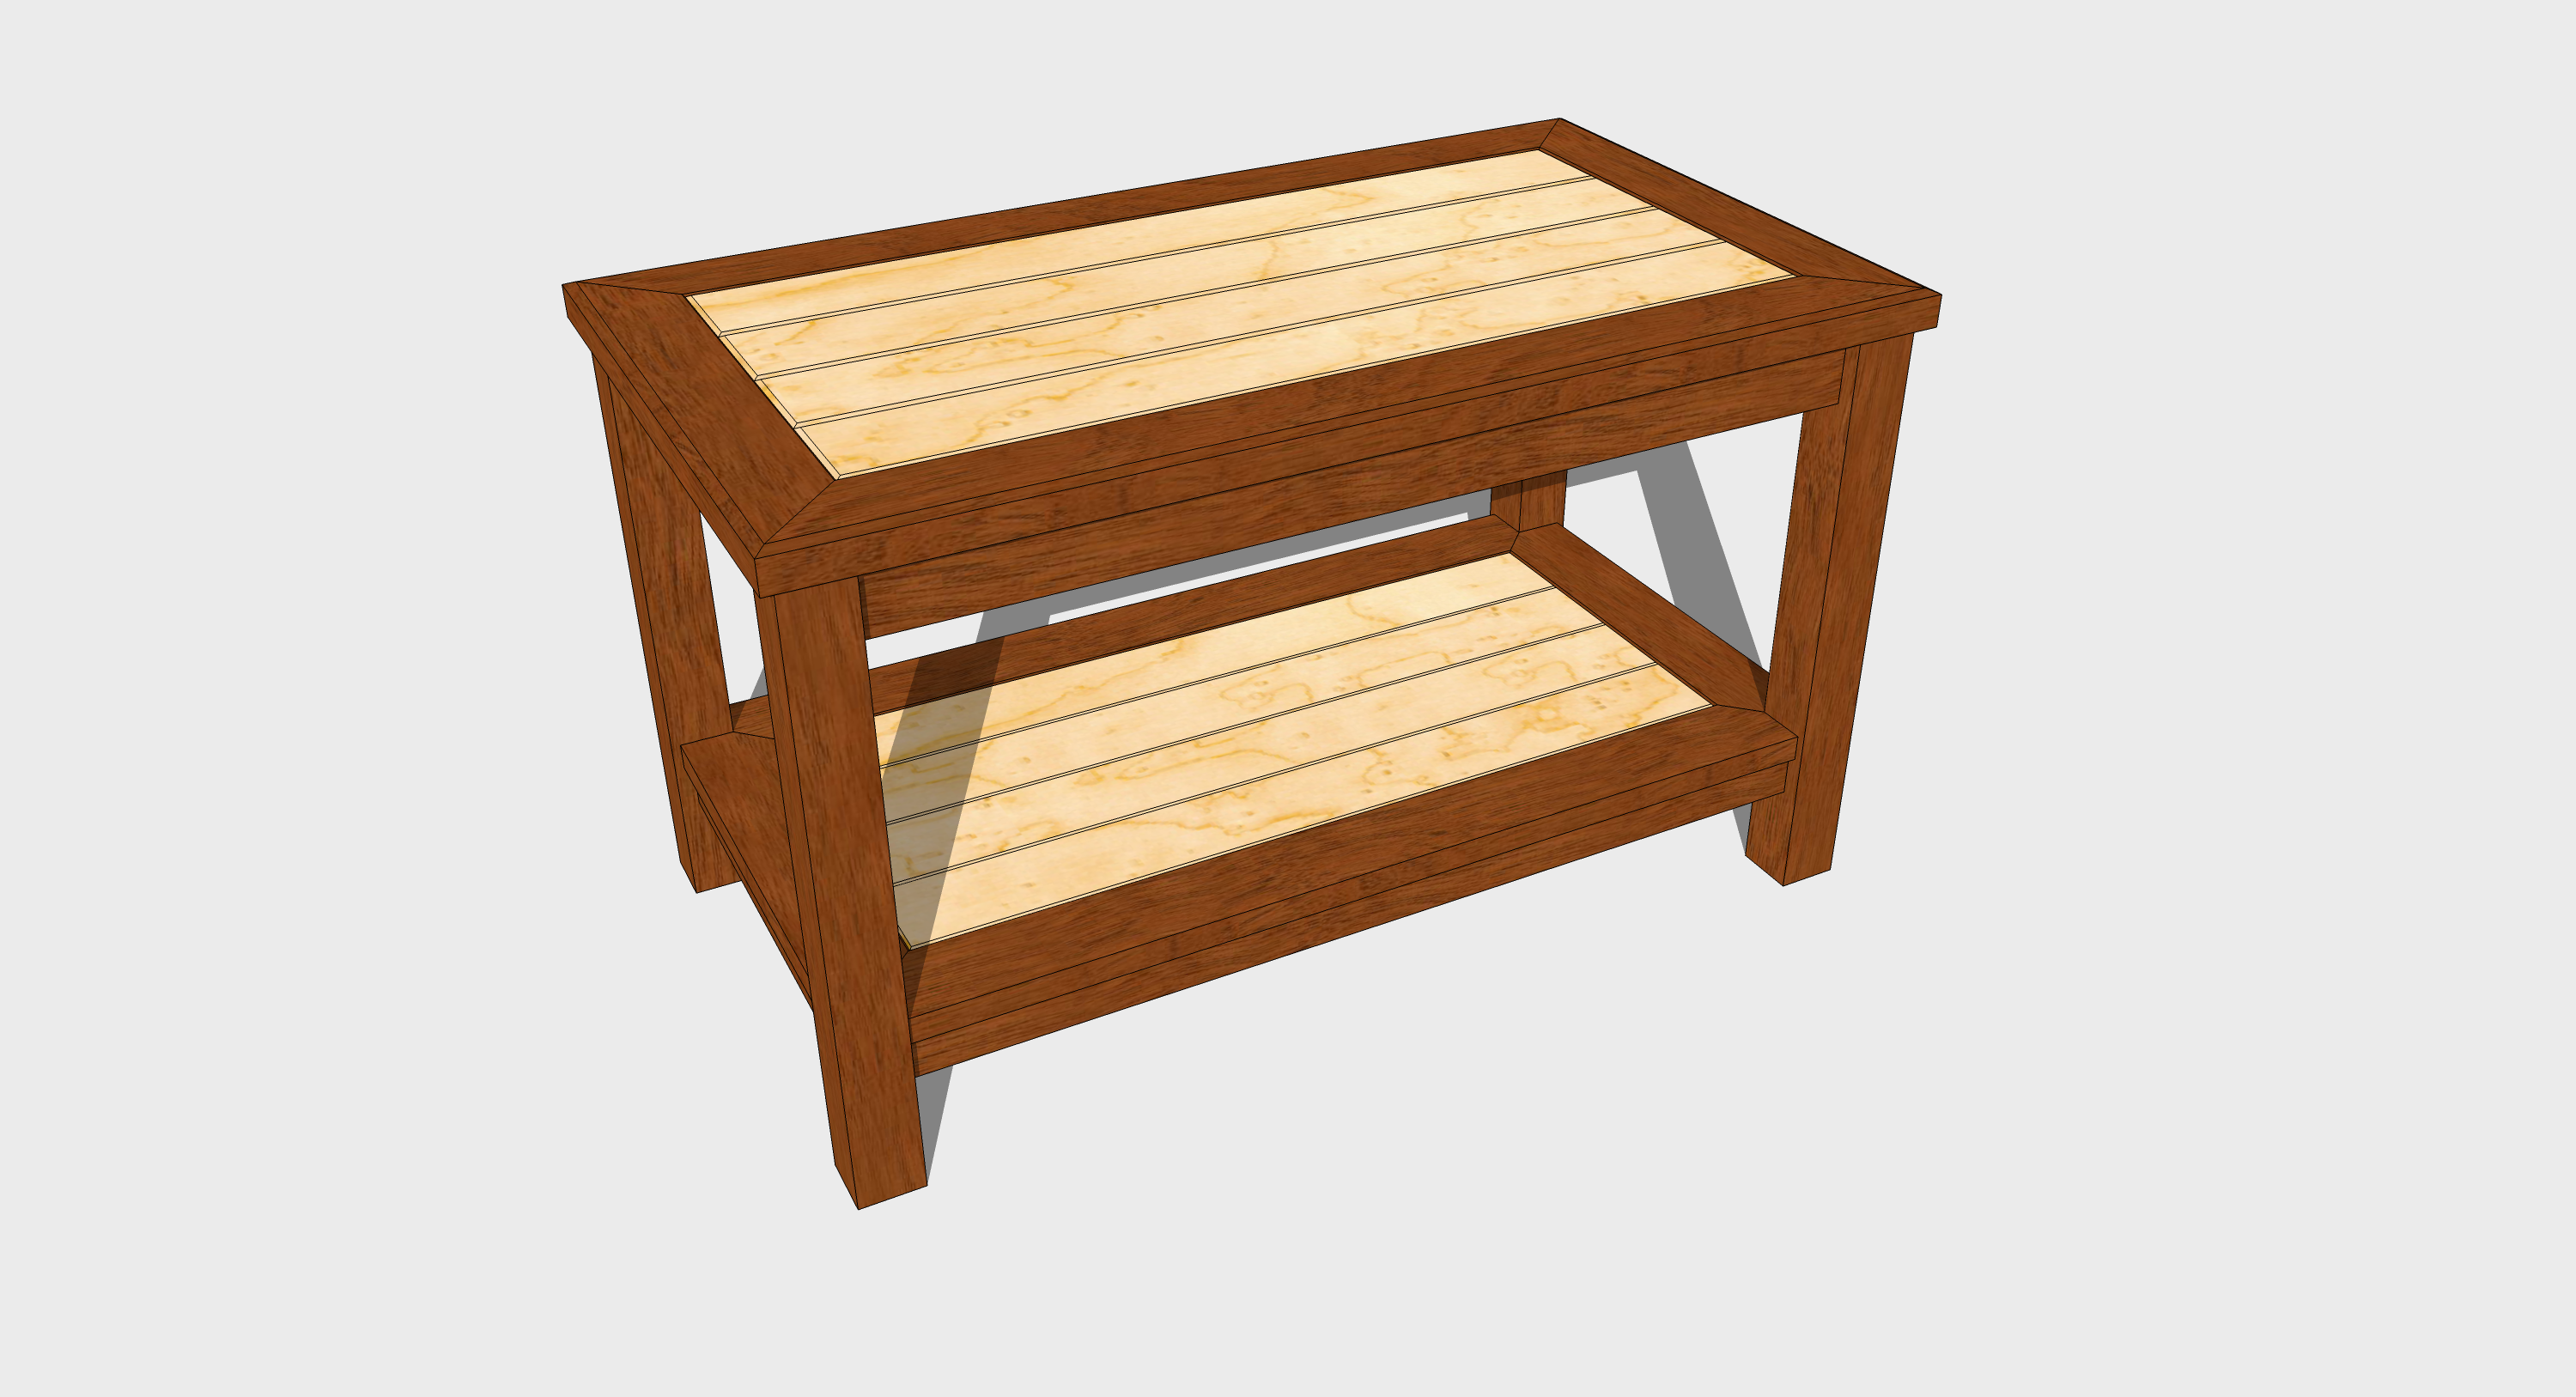 woodworking plans for coffee table | Quick Woodworking Projects